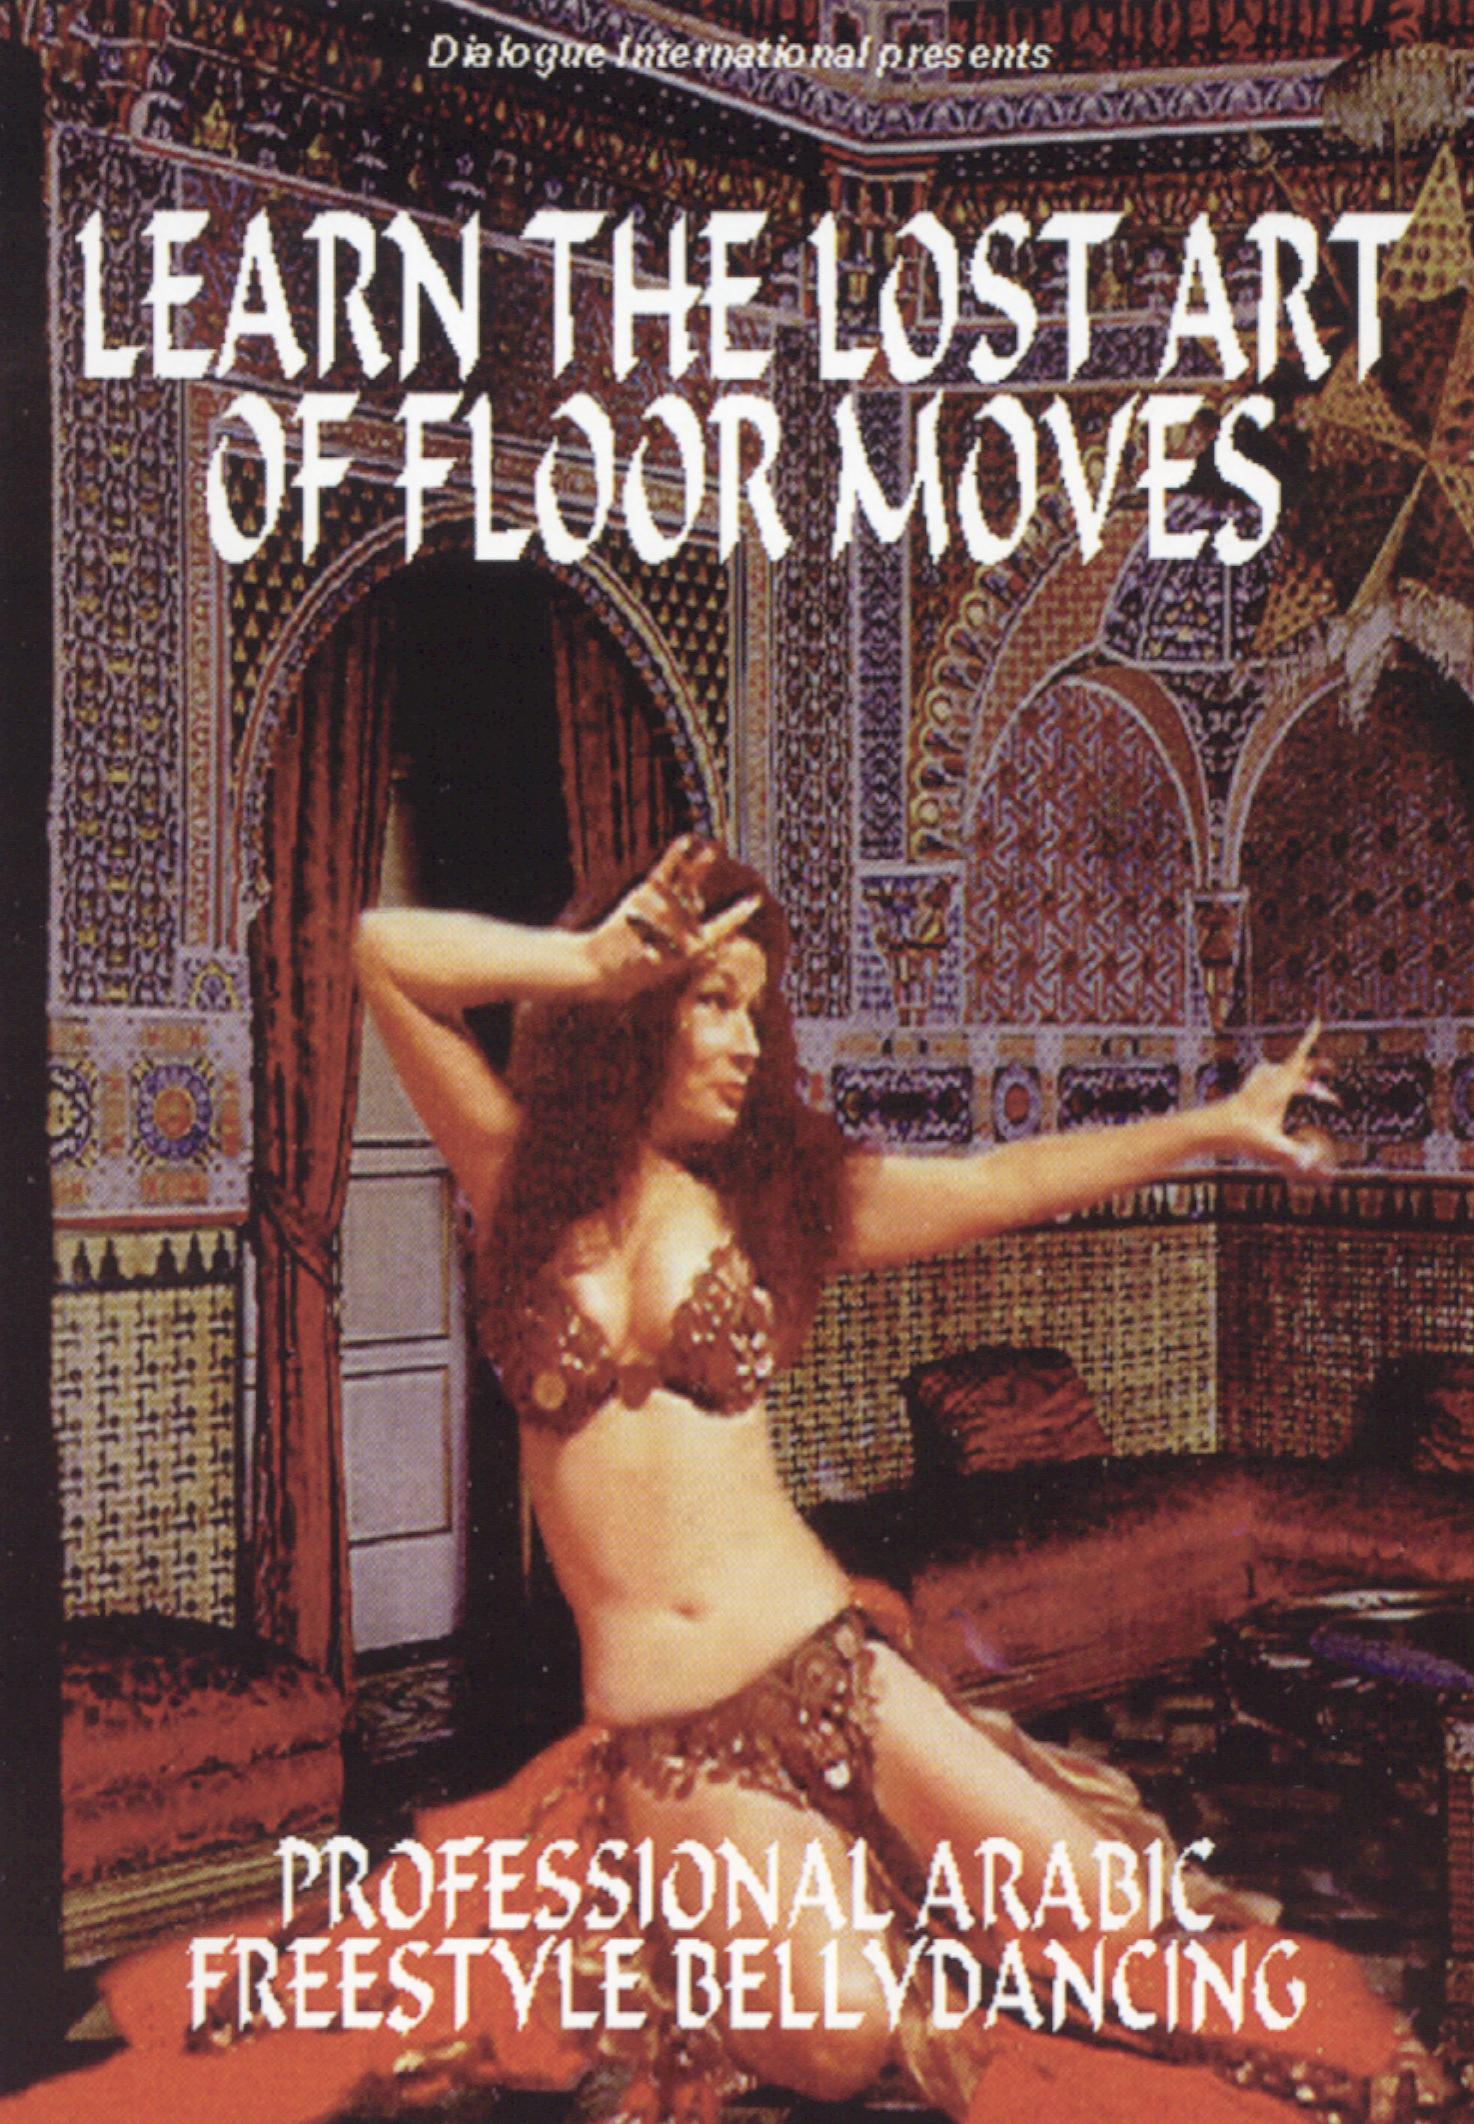 Learn the Lost Art of Floor Moves